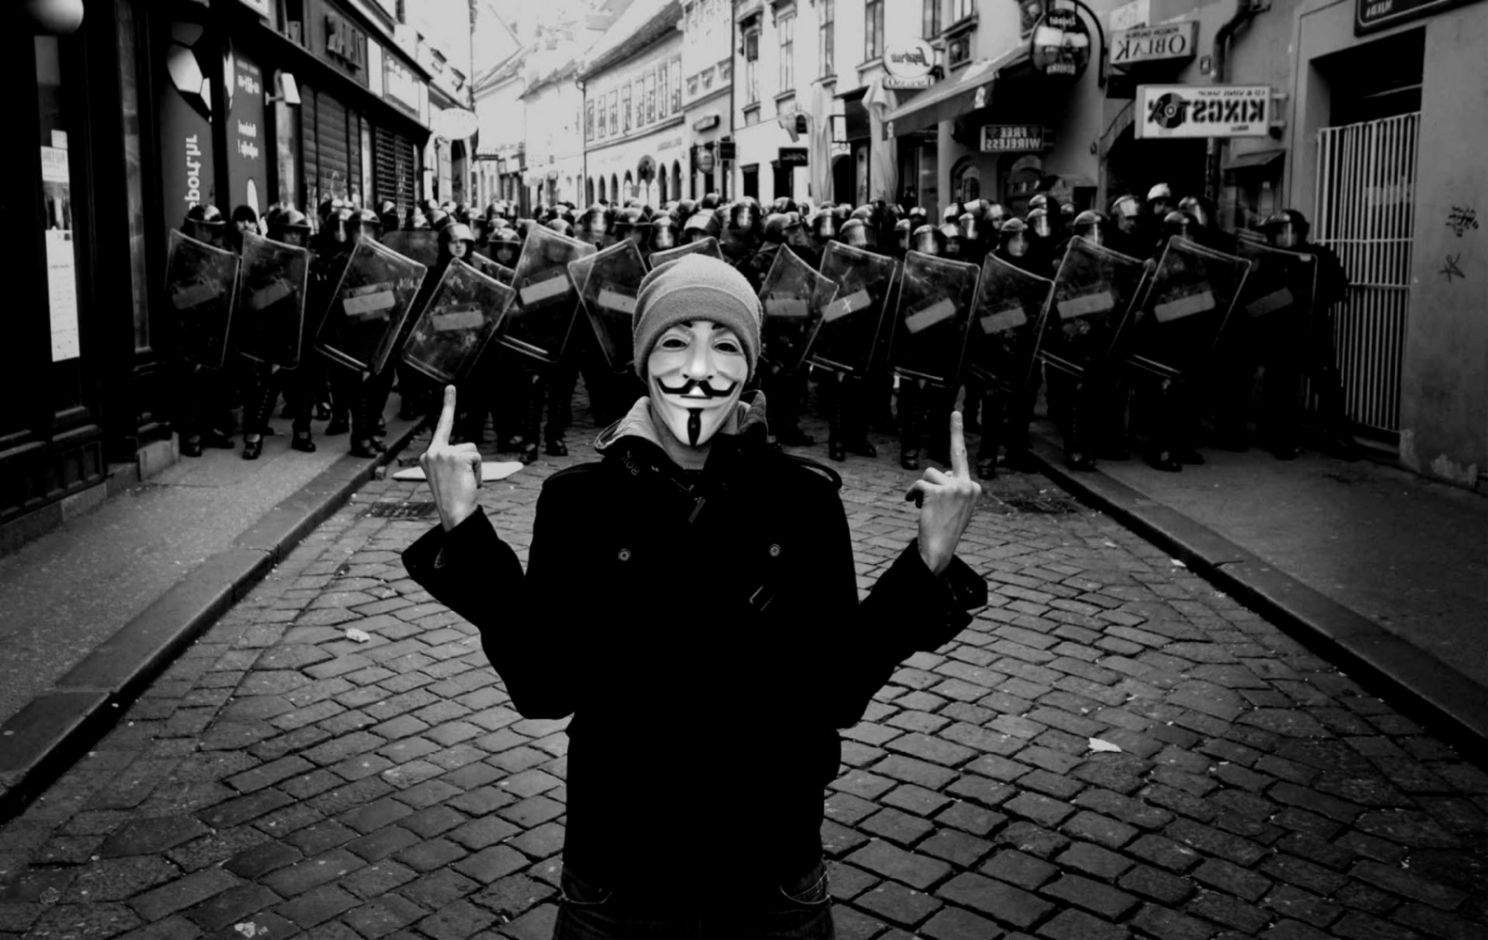 anonymous hd wallpaper all hd wallpapers gallerry